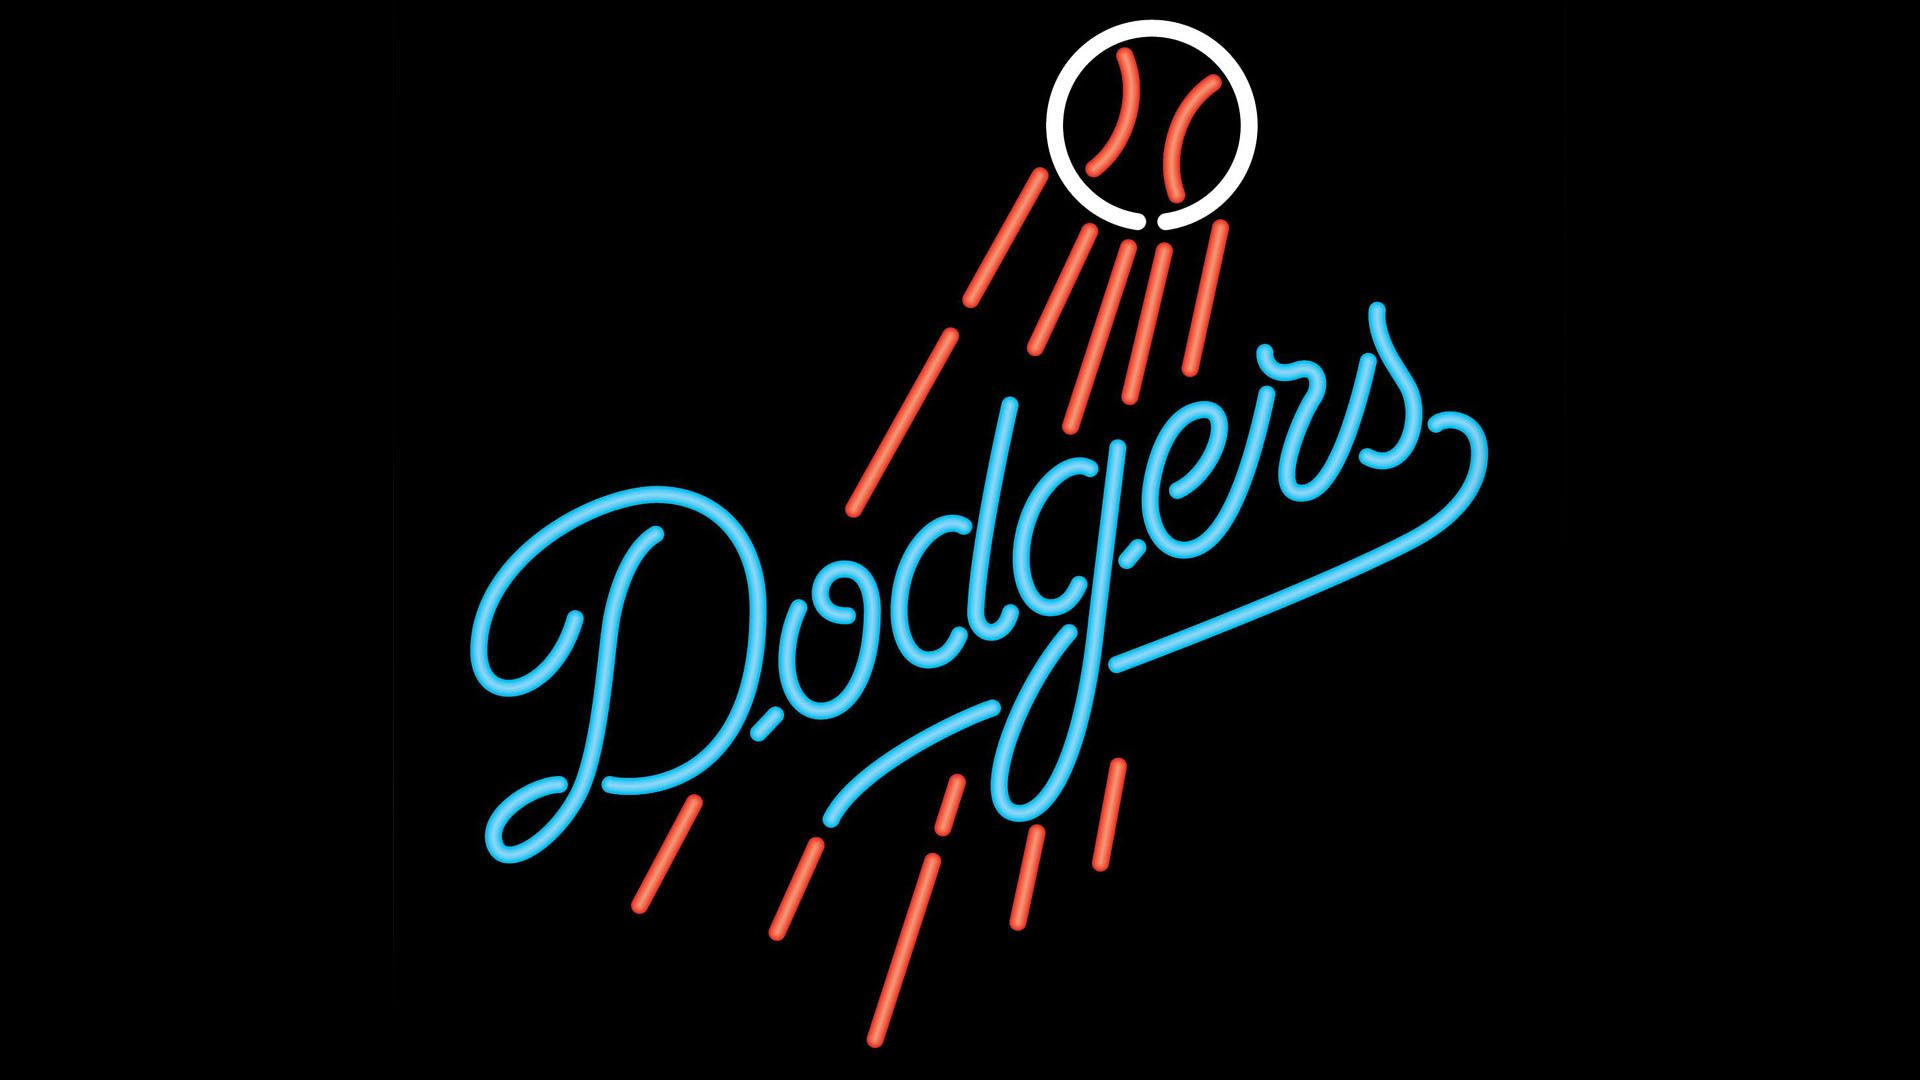 Dodgers download free wallpapers for pc in hd